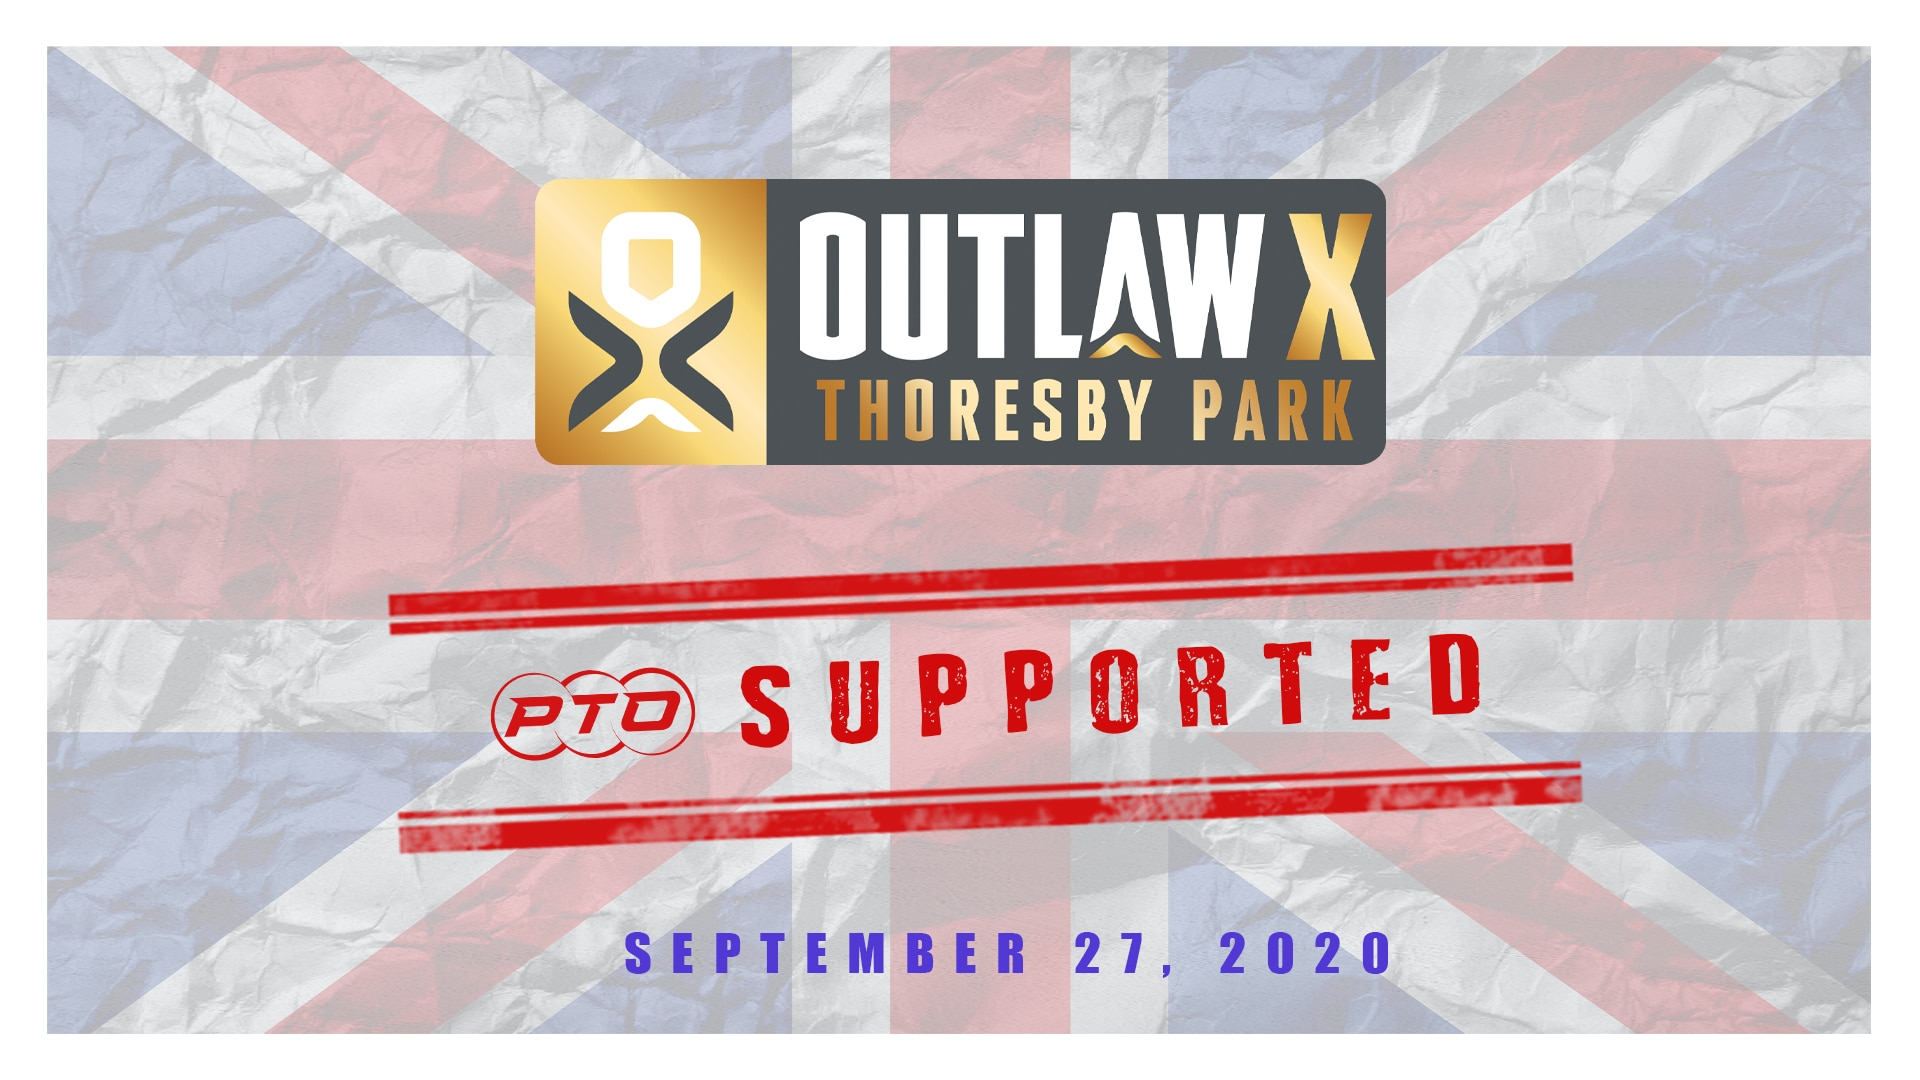 PROFESSIONAL TRIATHLETES ORGANISATION ANNOUNCES $15,000 PRIZE PURSE FOR OUTLAW X TRIATHLON